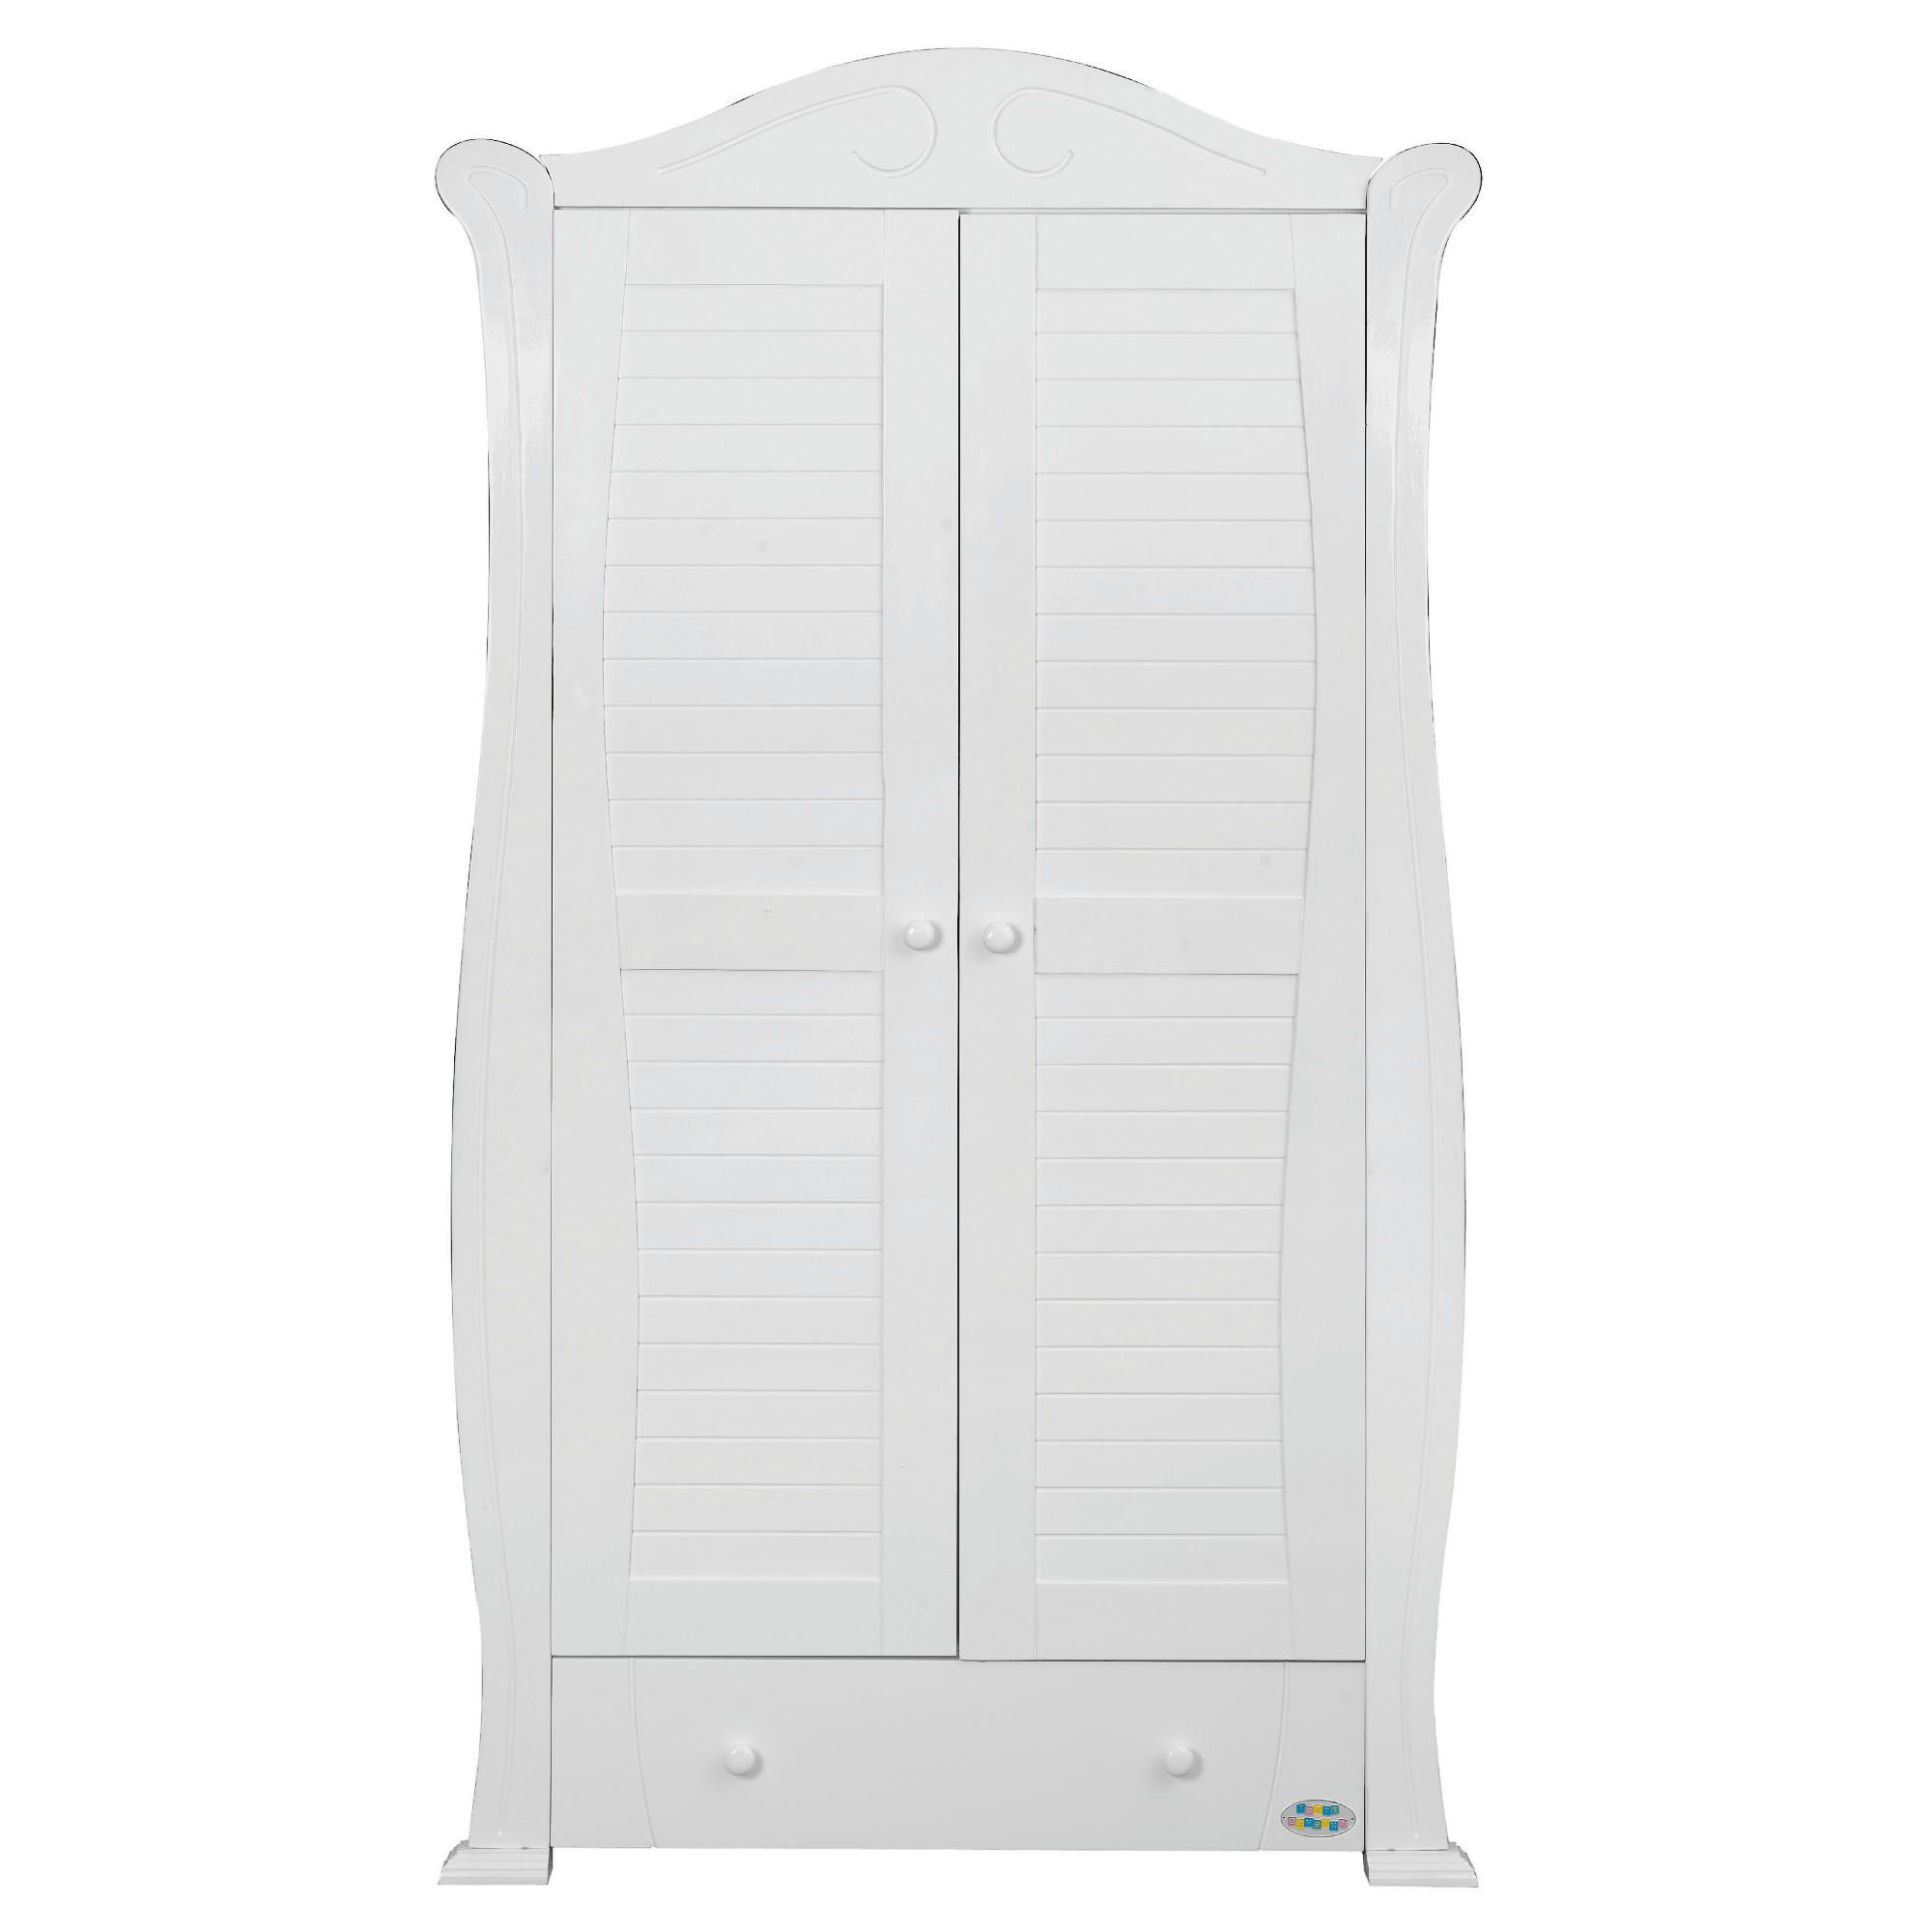 Tutti Bambini Marie Wardrobe, White at Tesco Direct